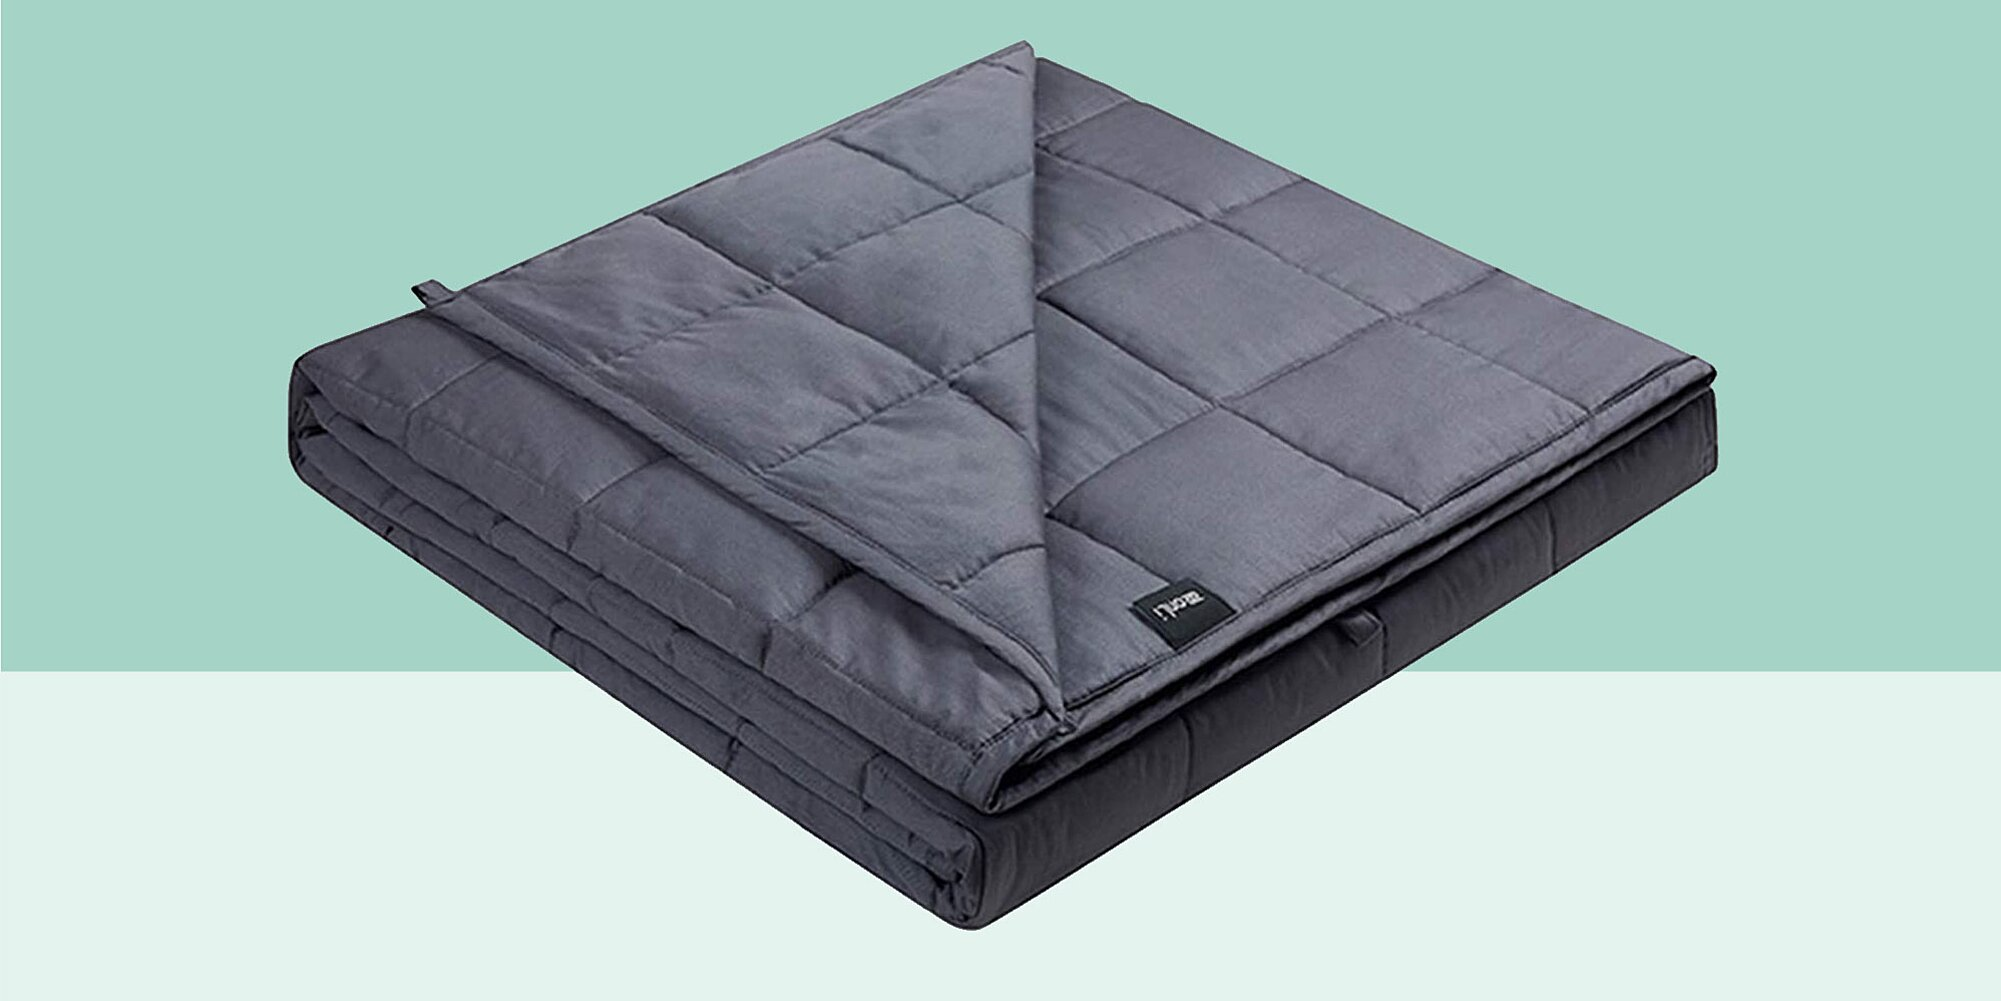 This 'Miracle' Cooling Weighted Blanket Helps You Fall Asleep Faster—Even If You're a Hot Sleeper